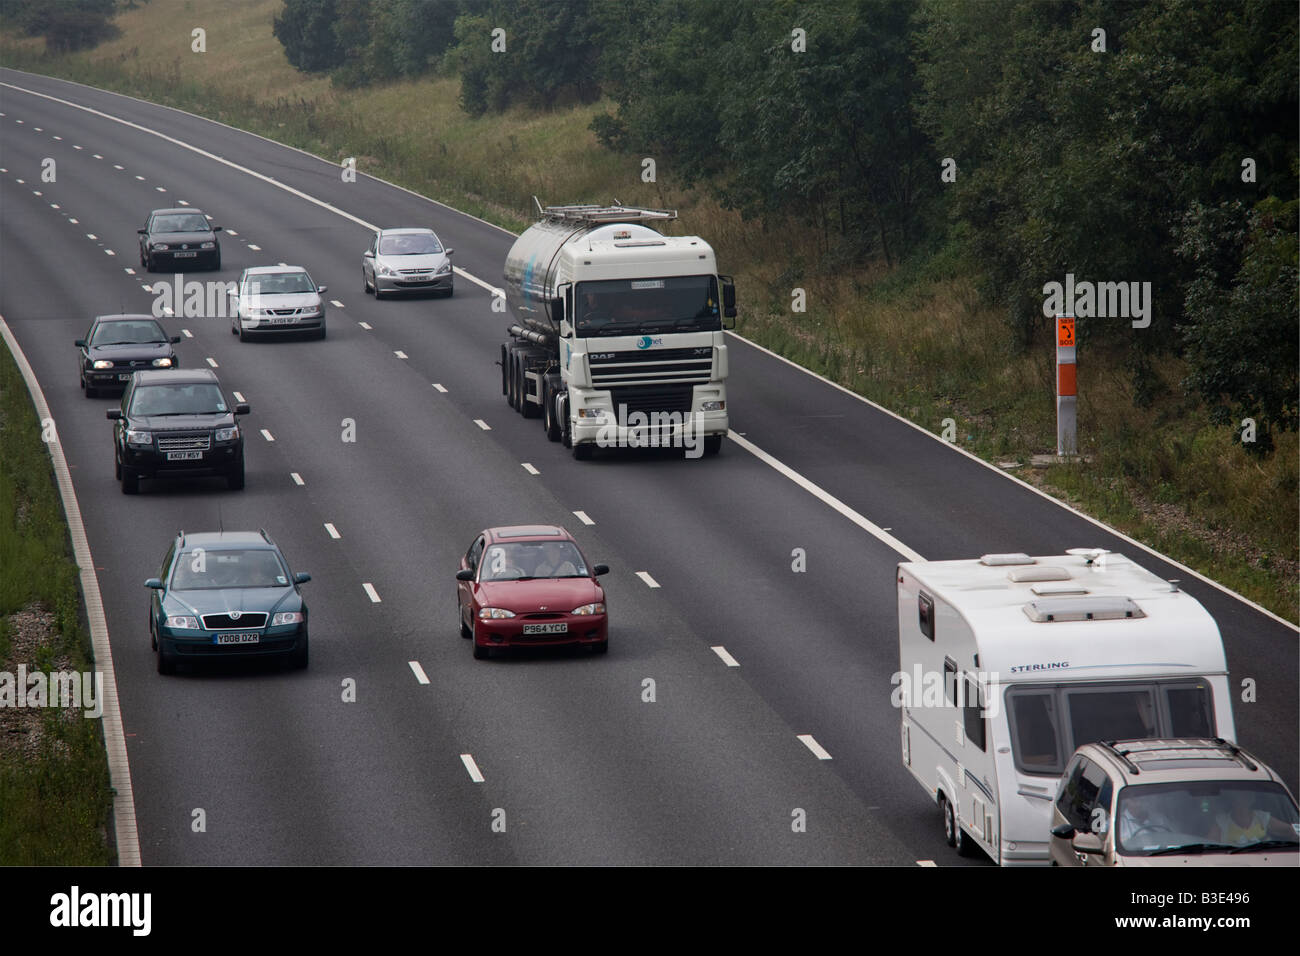 Traffic travelling on M25 motorway on dull sunday Essex GB UK - Stock Image